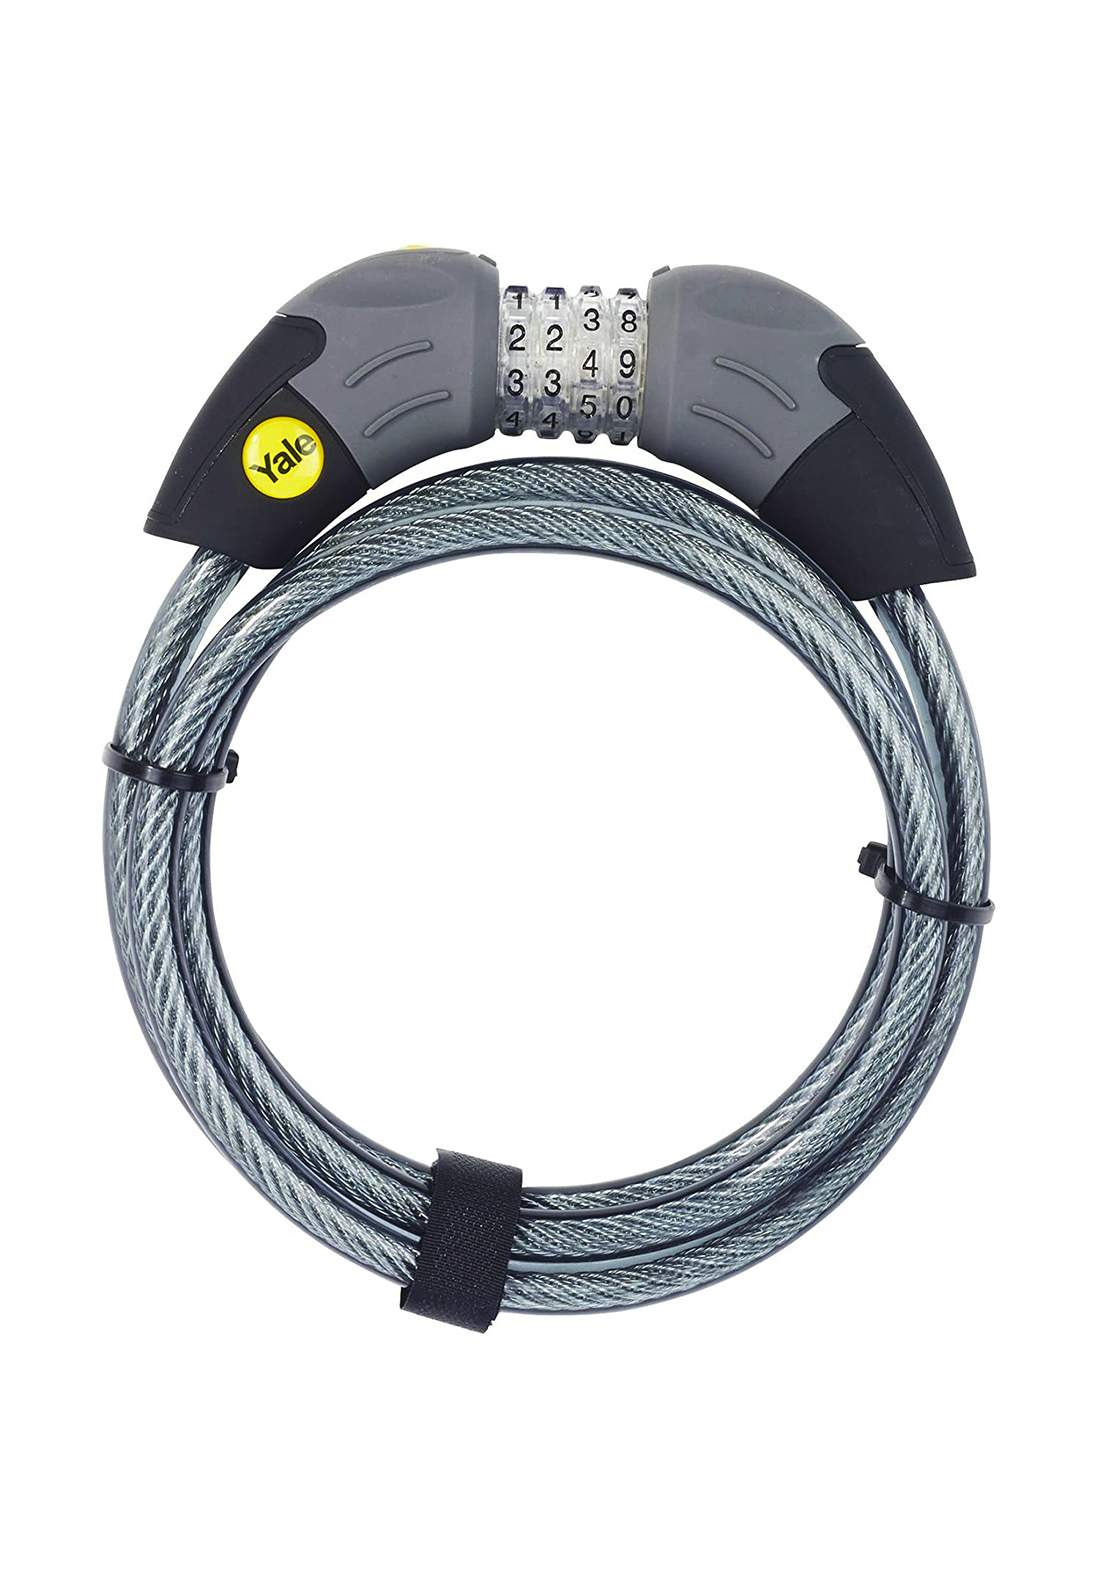 Yale YCC1/10/185/1 Combination Cable Bike Lock 1800 mm قفل دراجة